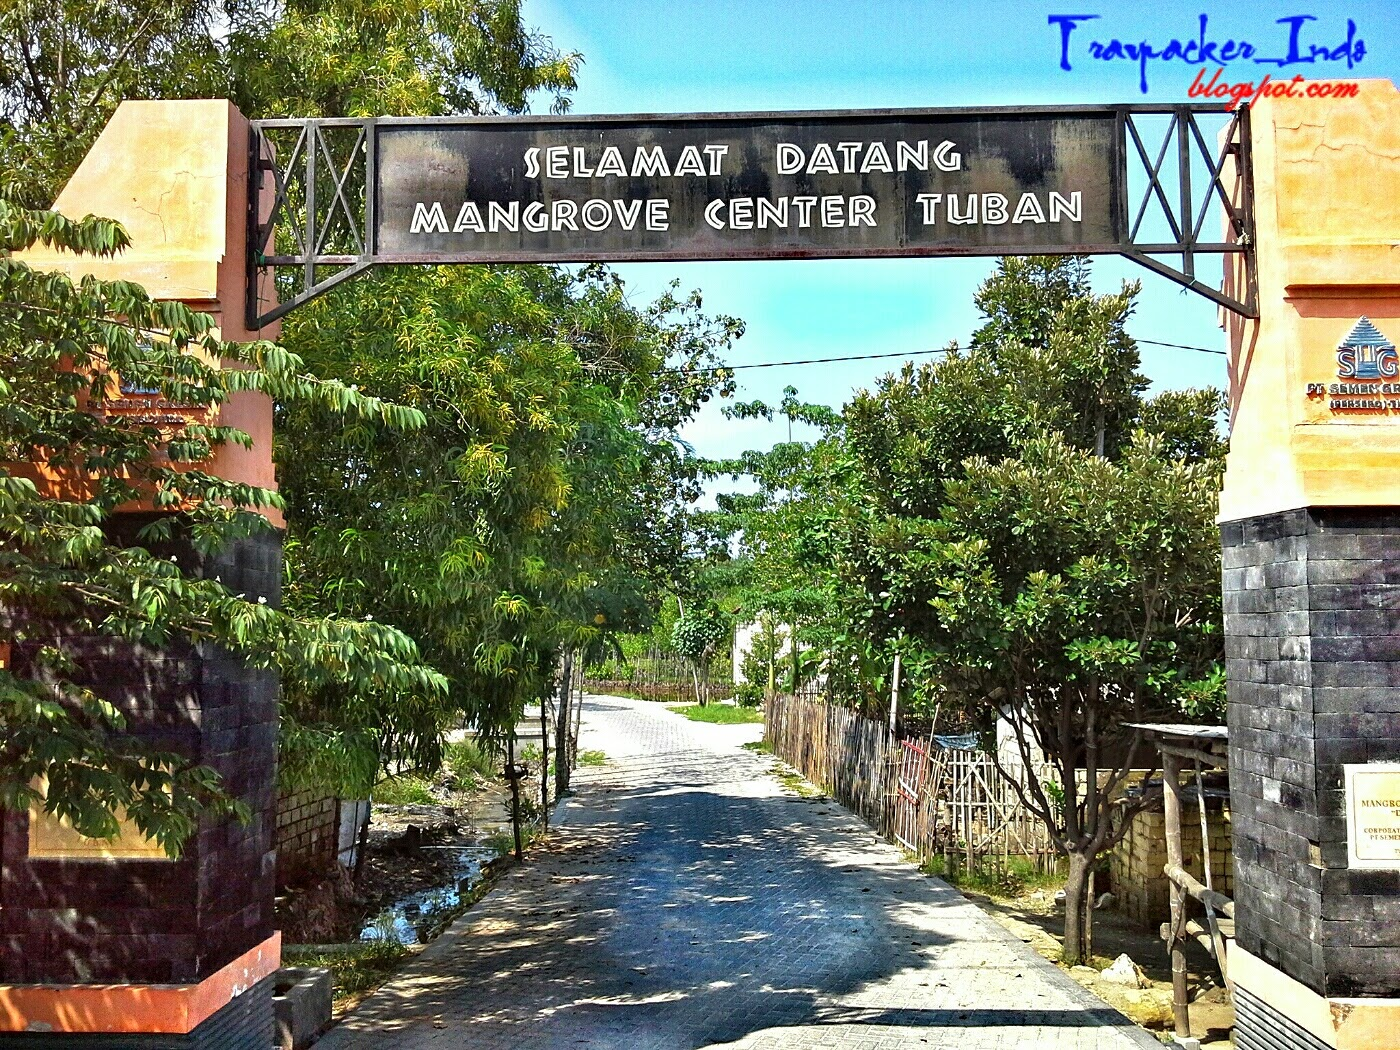 mangrove center tuban